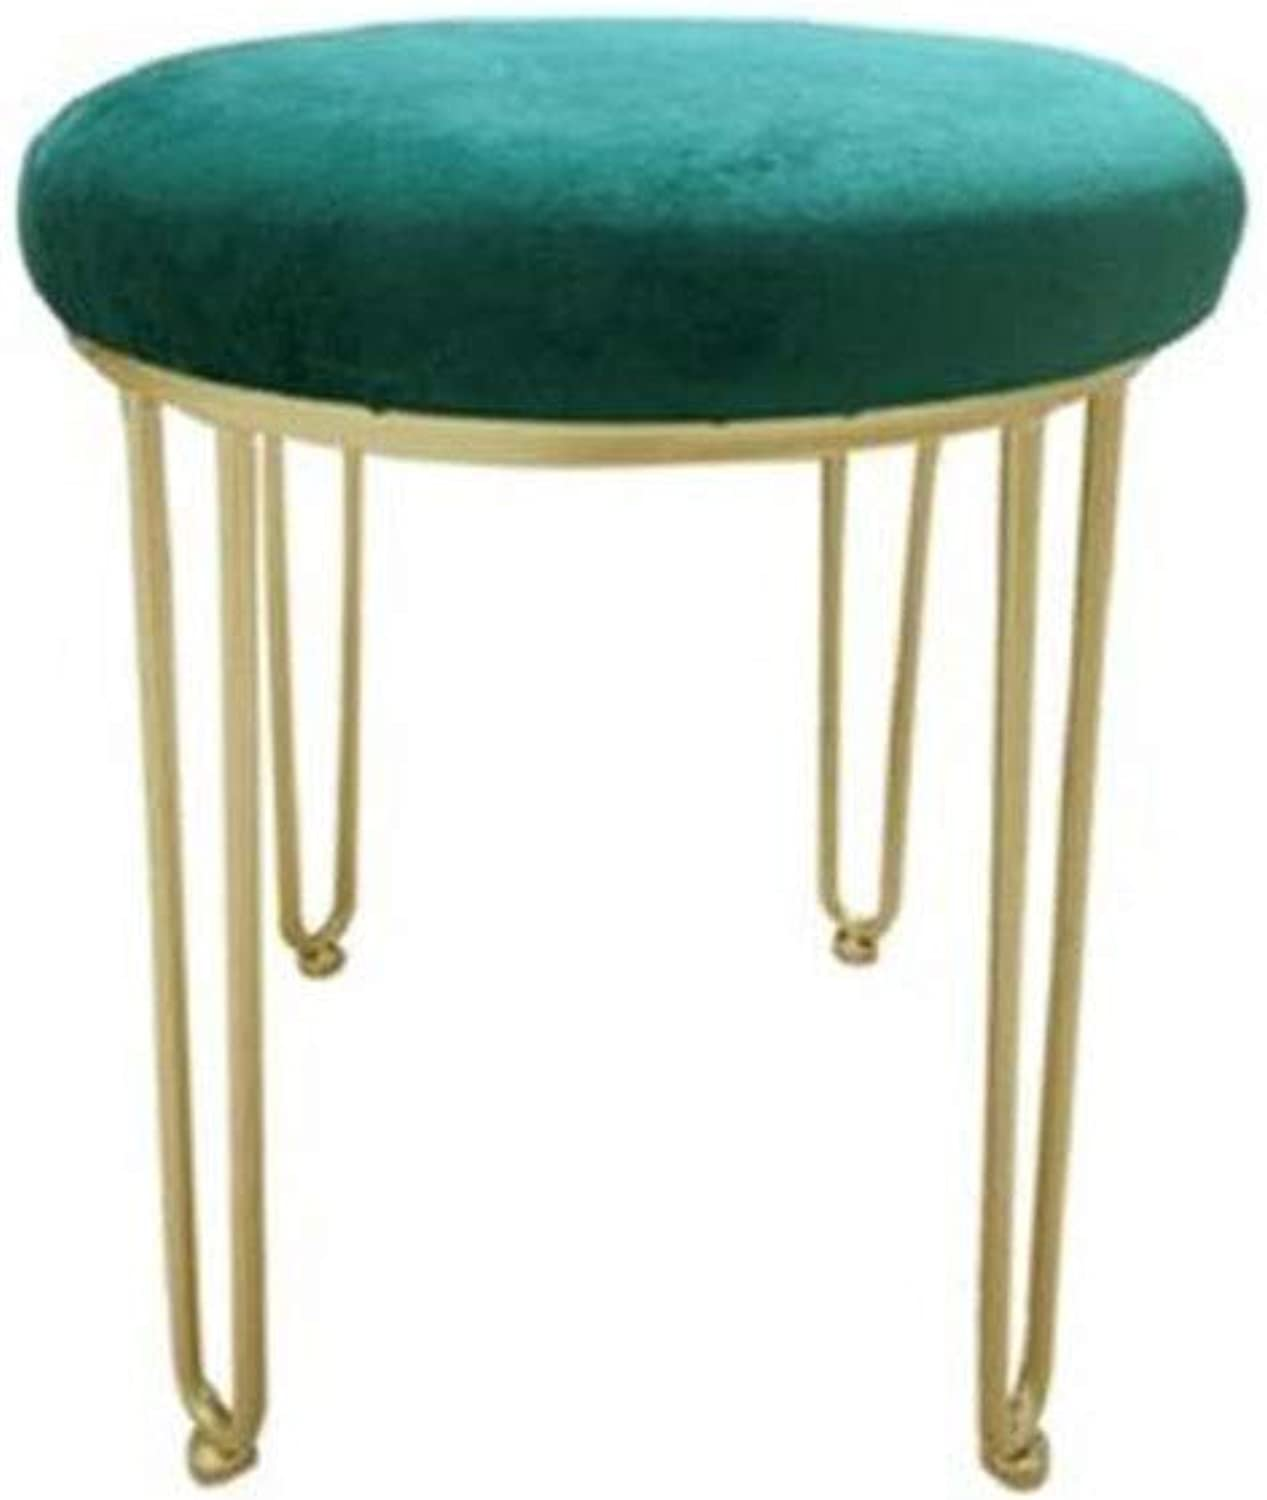 YCSD Nordic Creative Upholstered Vanity Stool Makeup Stool Princess Stool Bedroom Footstool Sofa Stool Dressing Chair Fitting Room Change shoes Bench (color   Green)